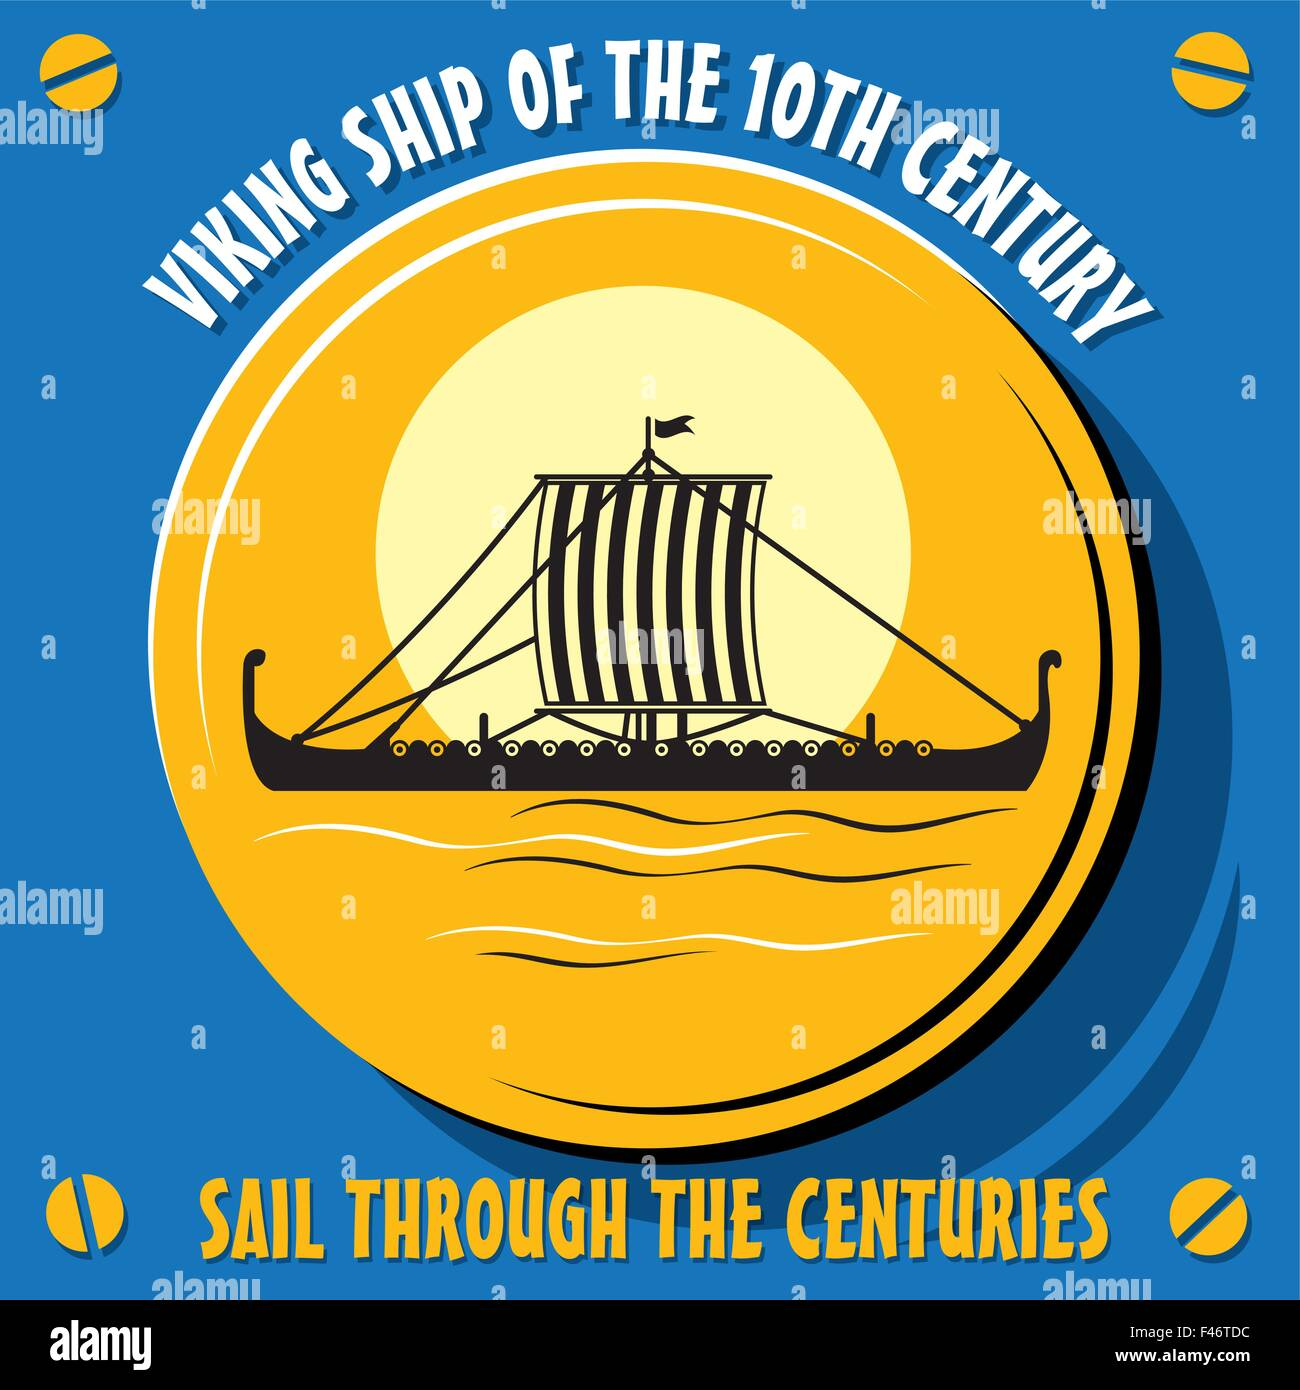 Sail through the centuries.Viking ship of the 10th century. Vector  illustration - Stock Vector